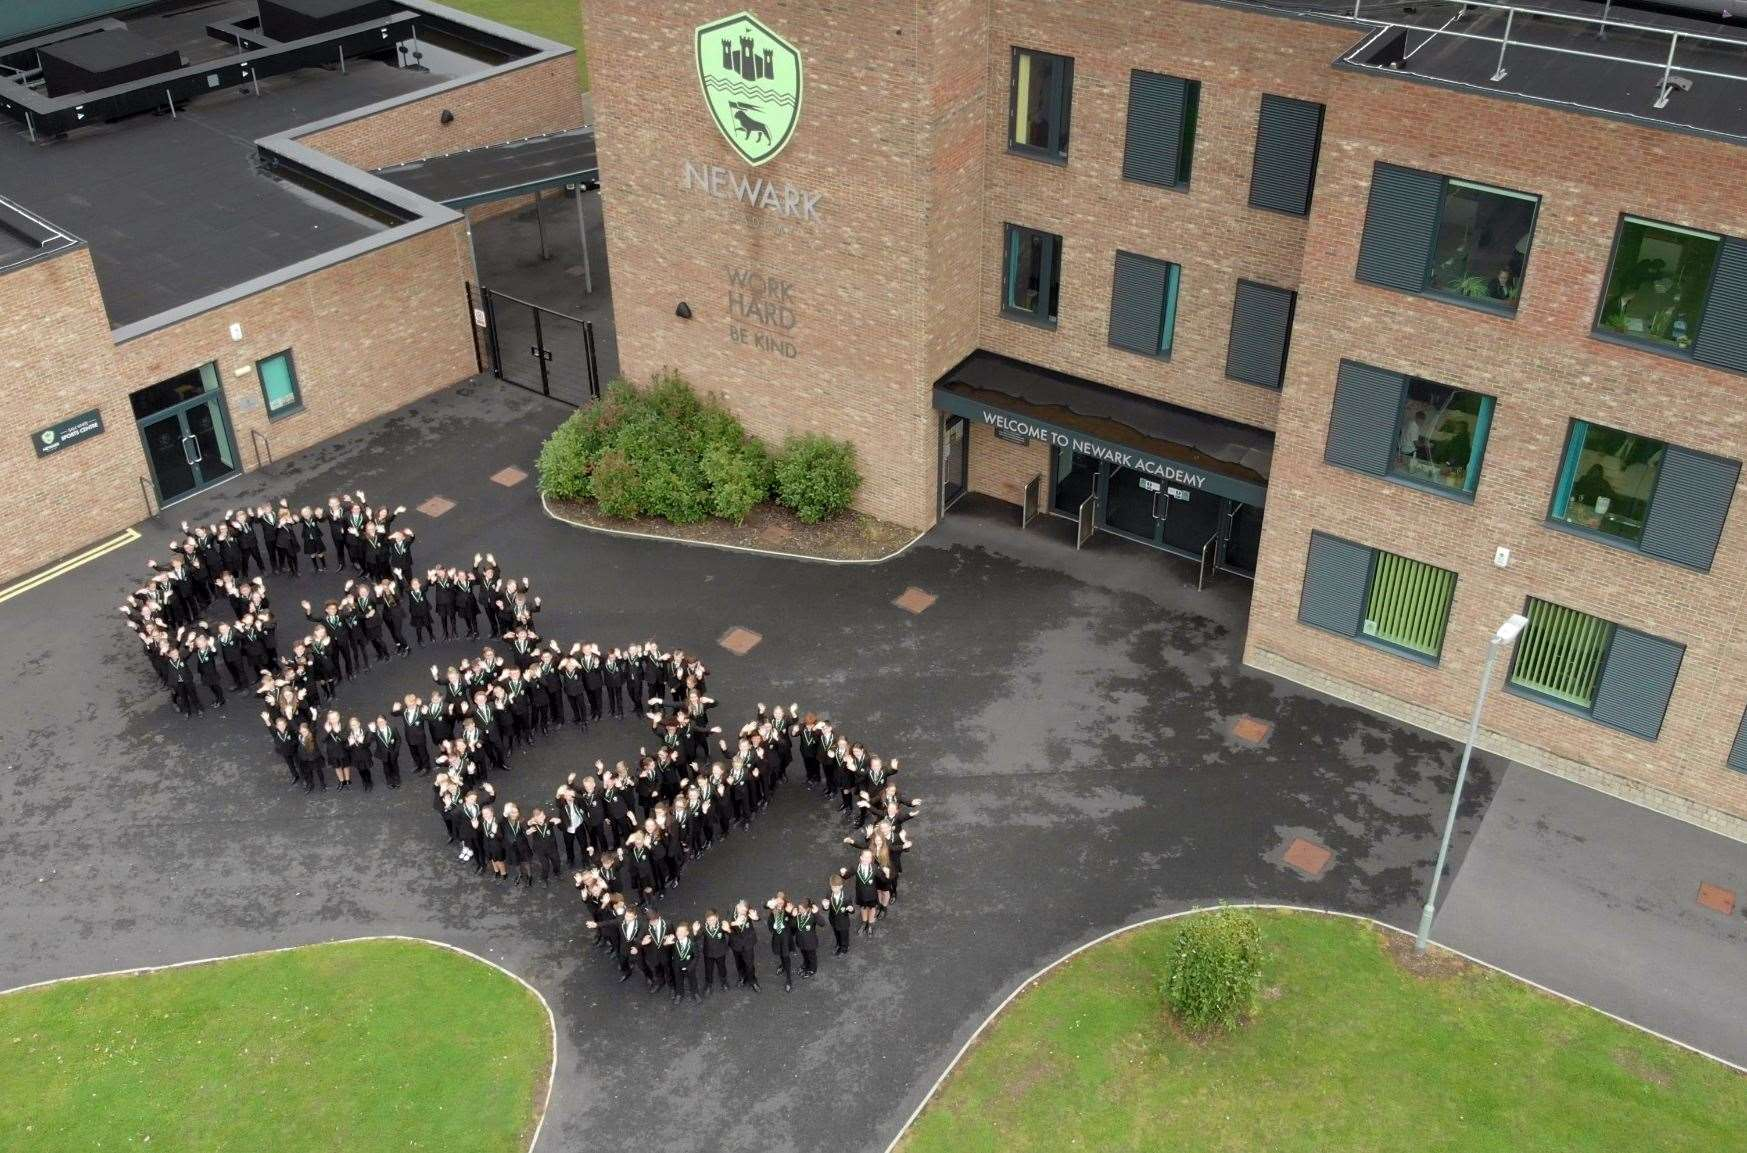 Newark Academy rated good by Ofsted. (18192636)